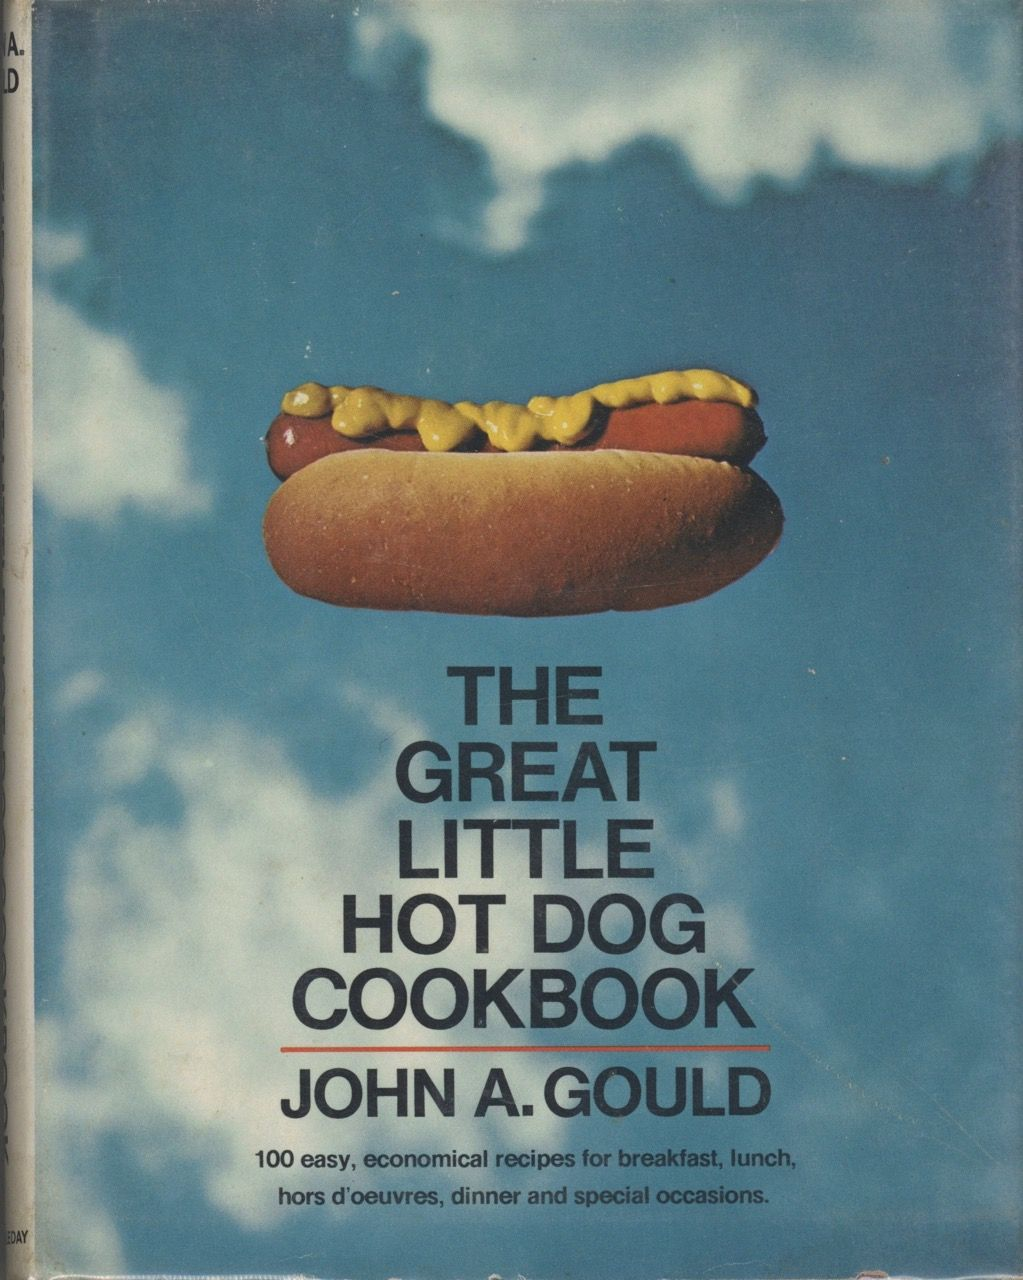 The Great Little Hot Dog Cookbook. Illustrated by Ed Nuckolls. John A. Gould.